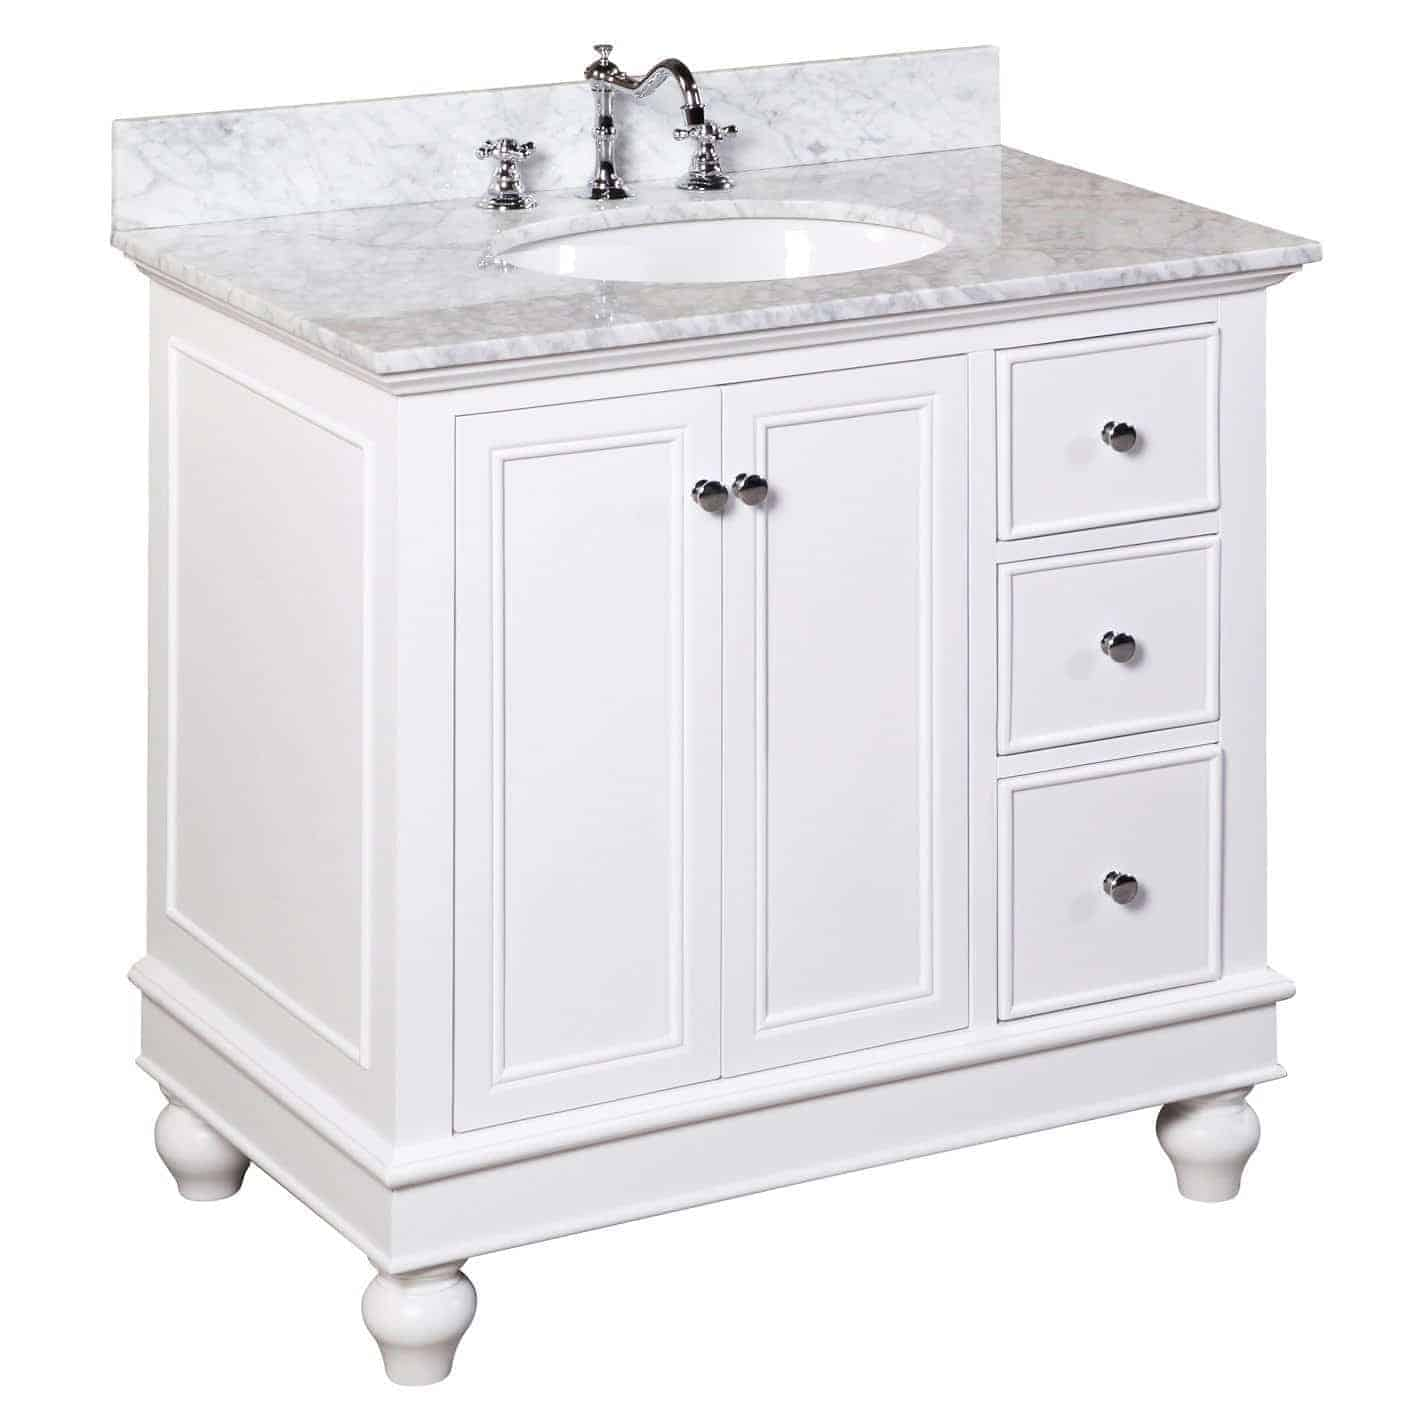 Good Wayfair Bella vanity